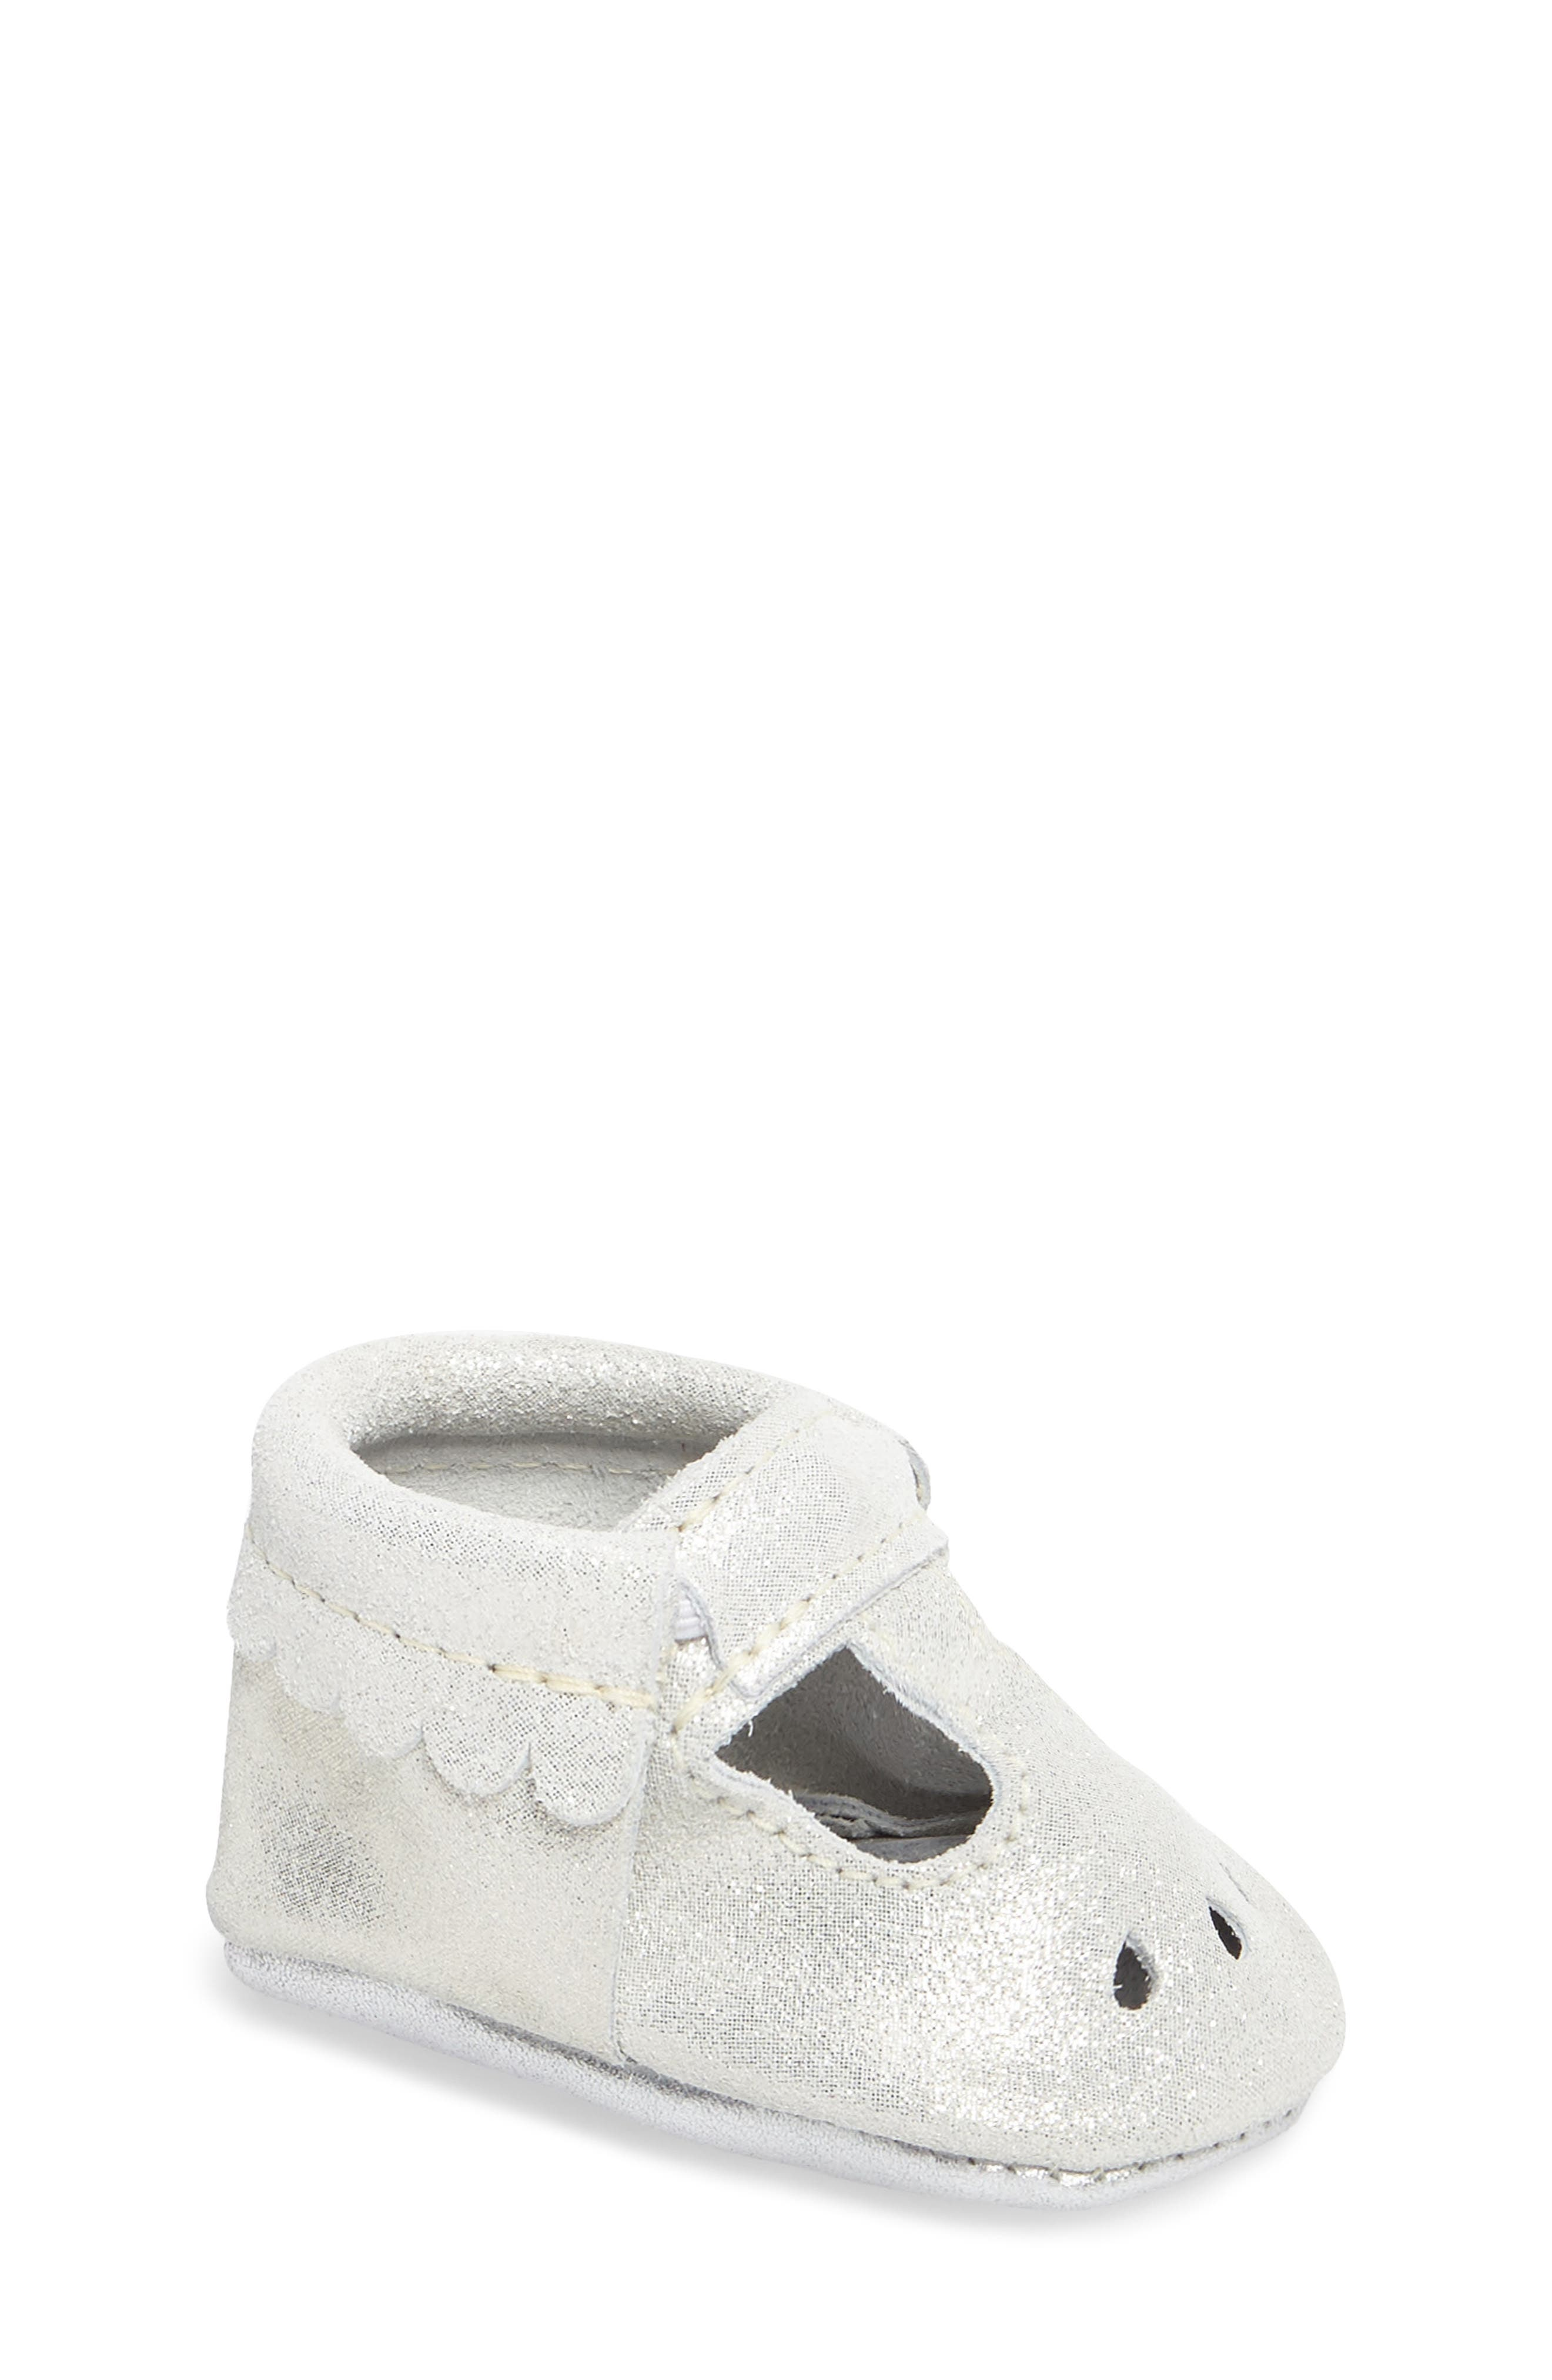 Perforated Mary Jane Moccasin,                         Main,                         color, GLASS SLIPPER LEATHER